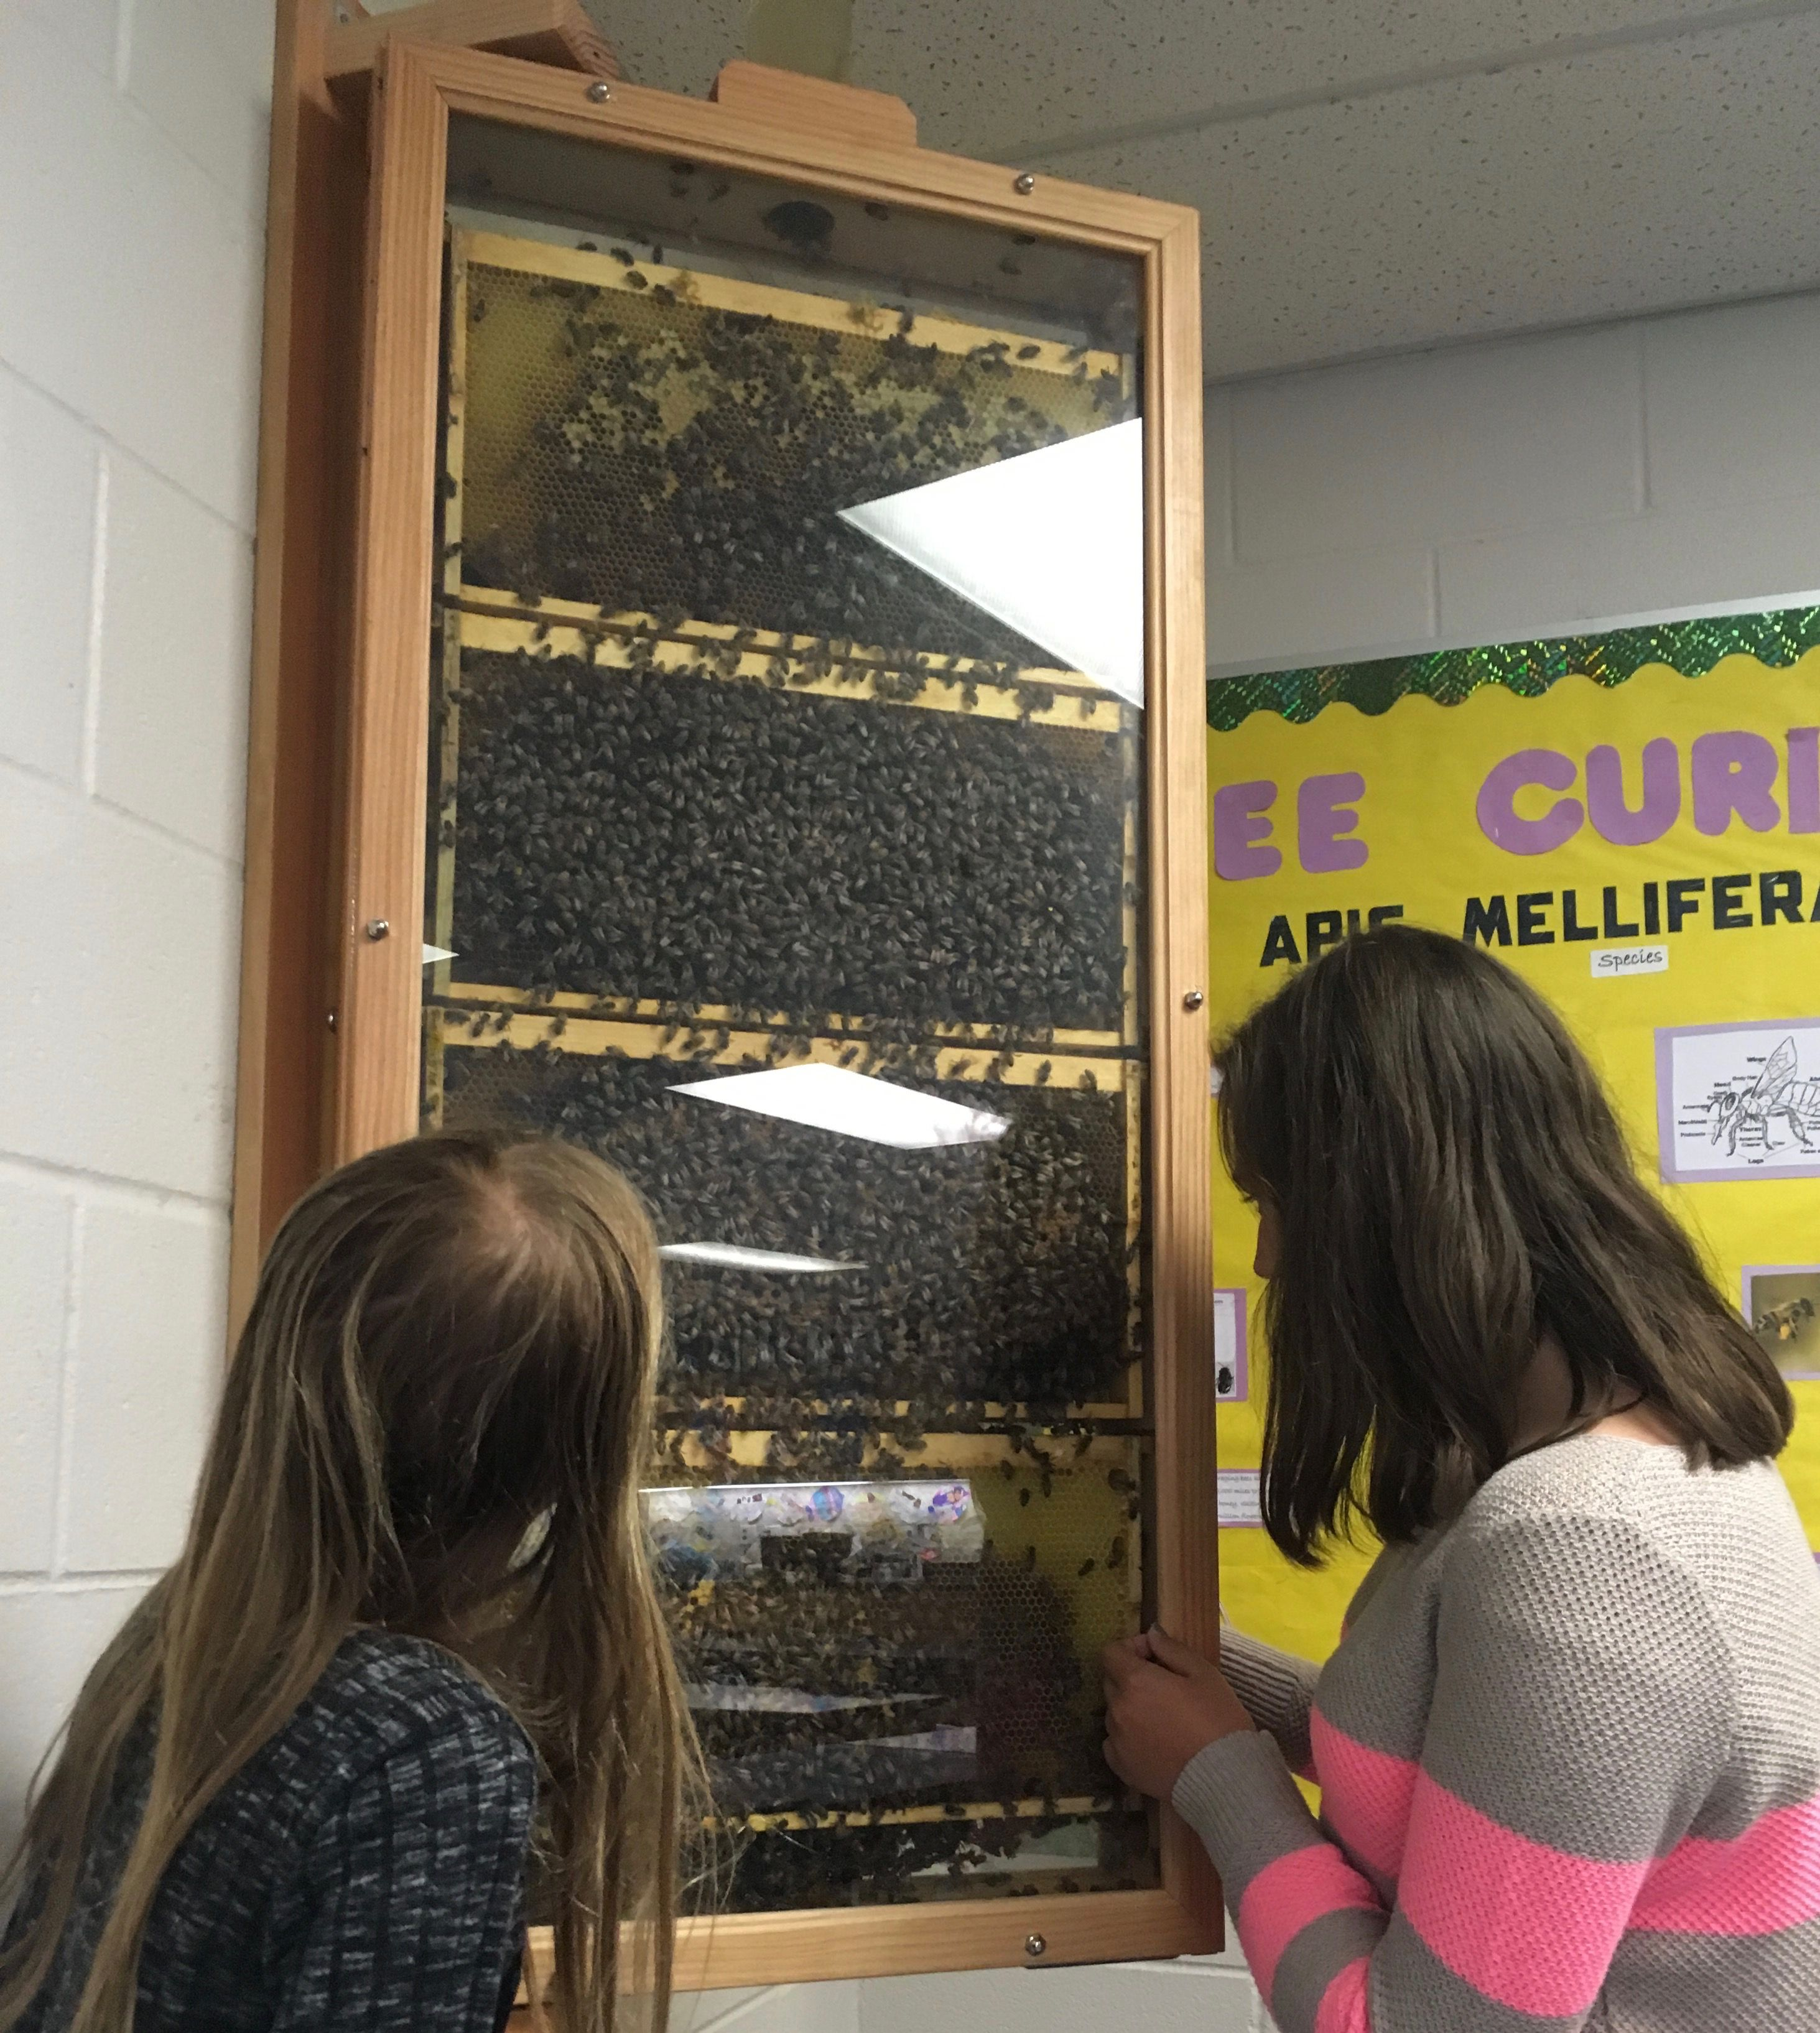 Foundation Grant Has Middle School Science Classrooms Buzzing (in a quiet, contained way)